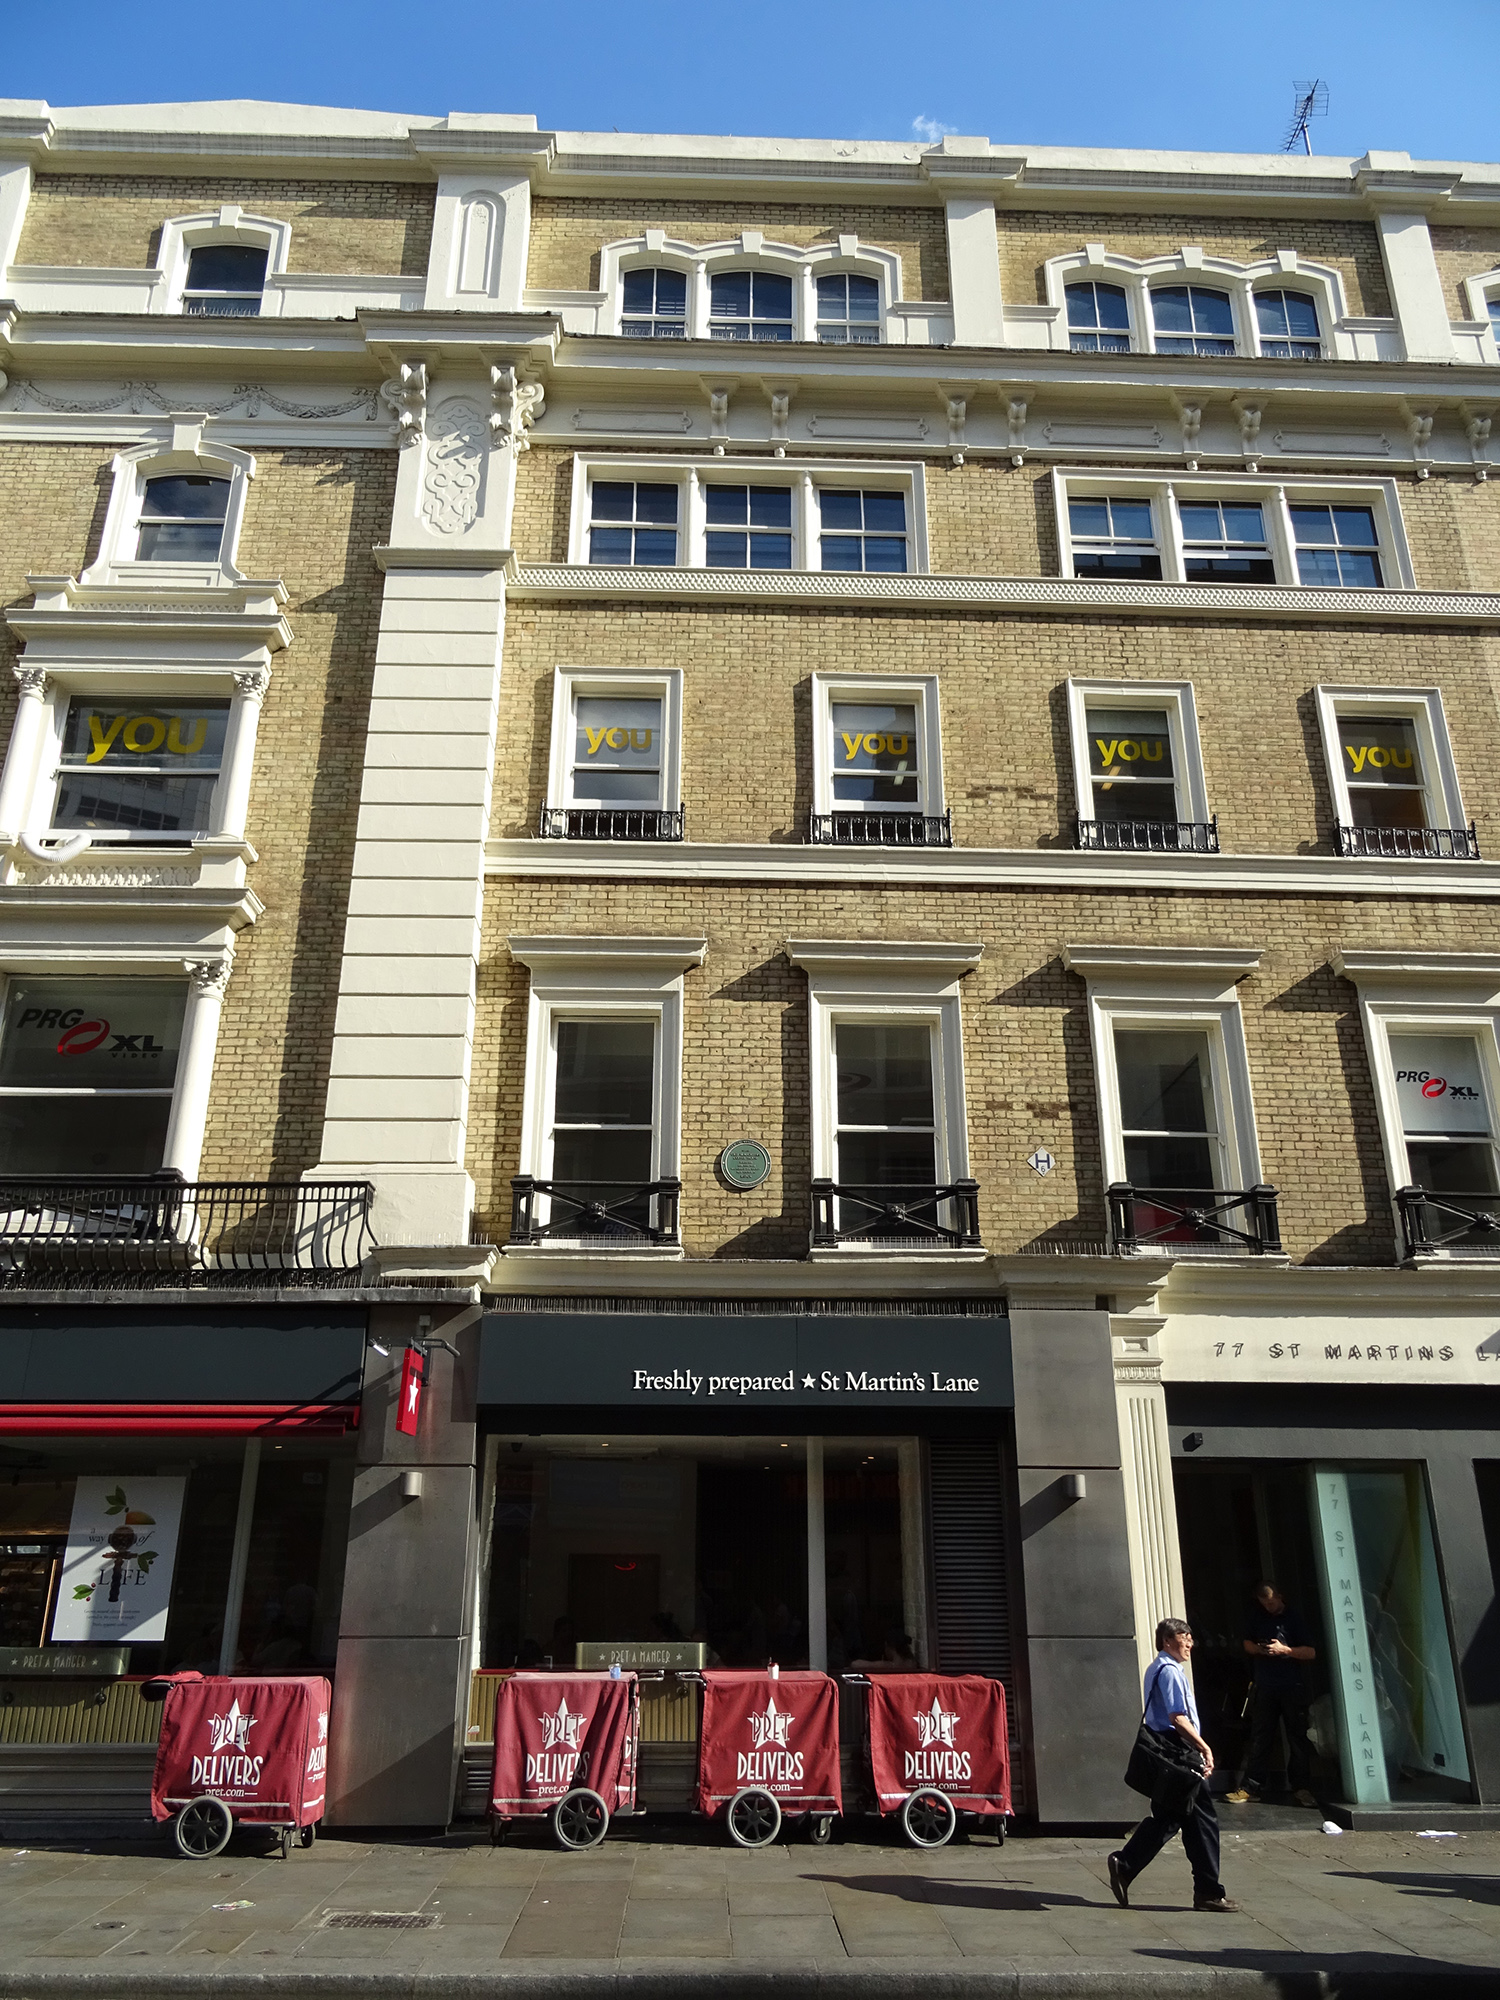 Filesite Of Old Slaughters Coffee House 78 St Martins